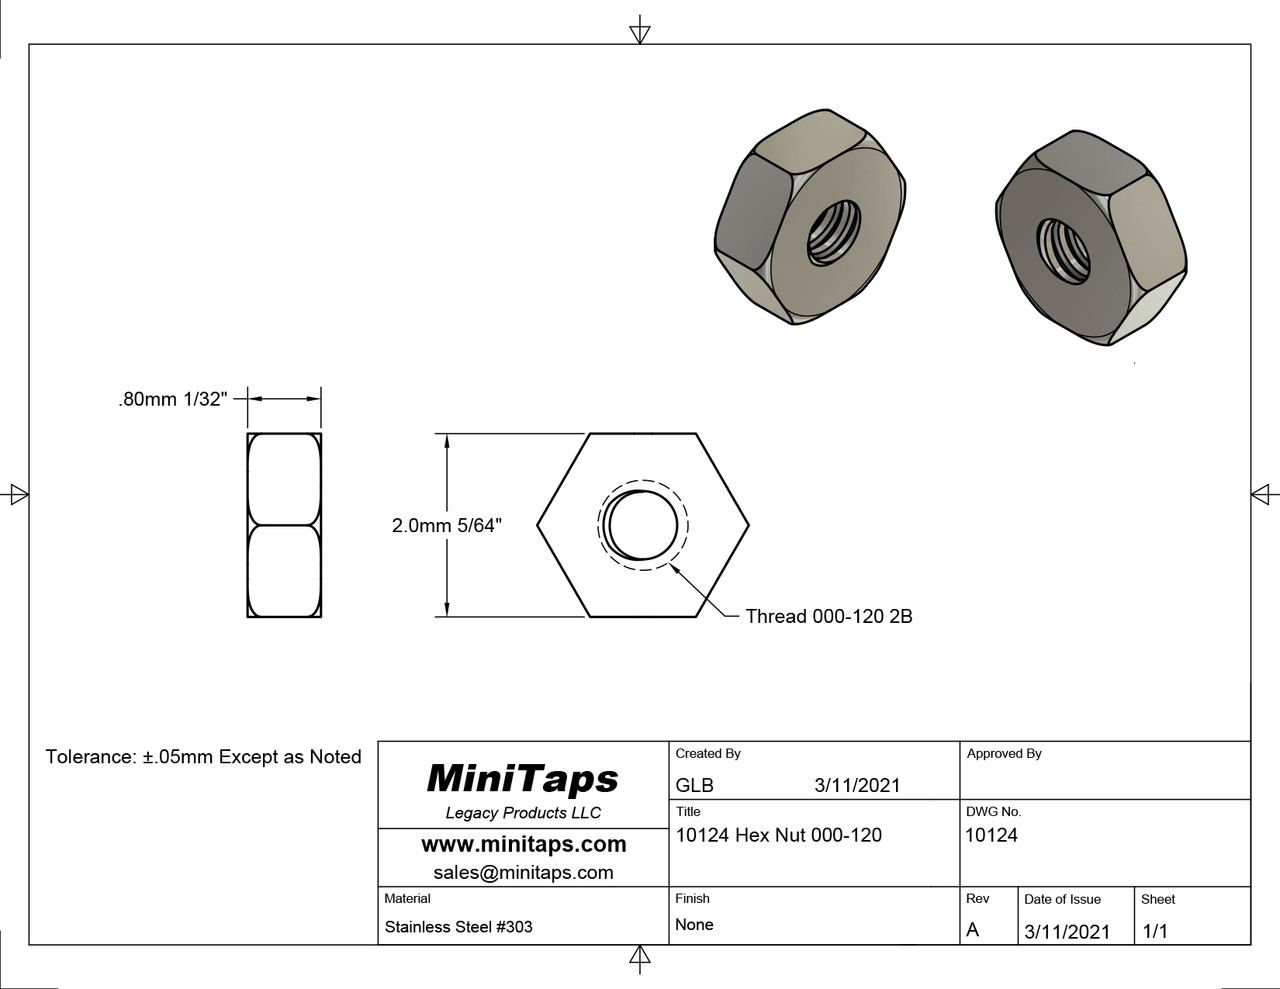 """Machined Hex Nut Thread 000-120 ACF 5/64"""" (across the flats) 2.00mm  Thickness 1/32"""" / 0.80mm Material: Stainless Steel Part Color Finish is Silver Price is for 100 count package with bulk pricing available."""